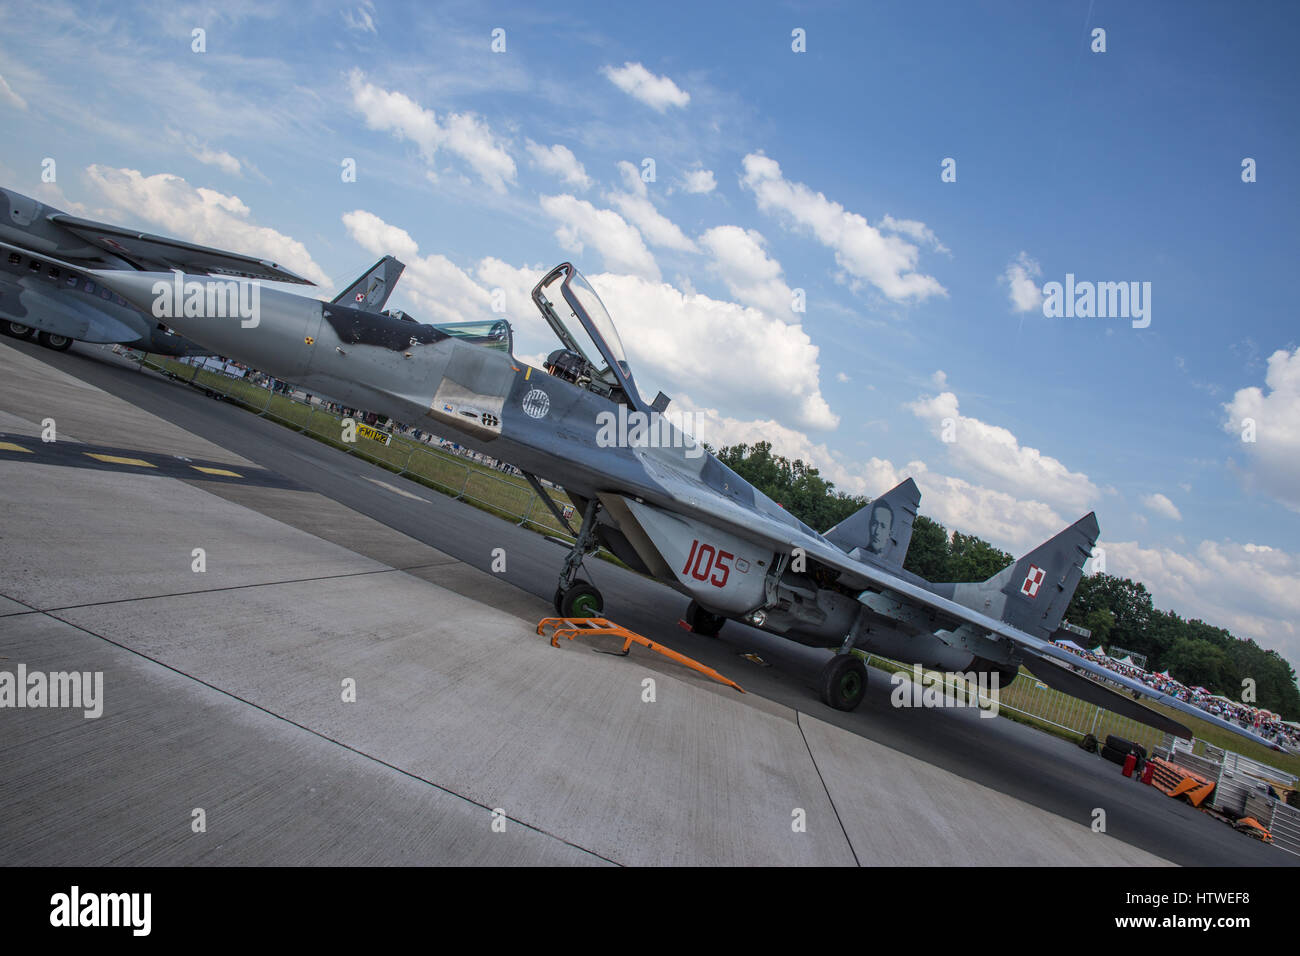 MIG-29 military aircraft at international airshow exhibition in aerodrome - Stock Image